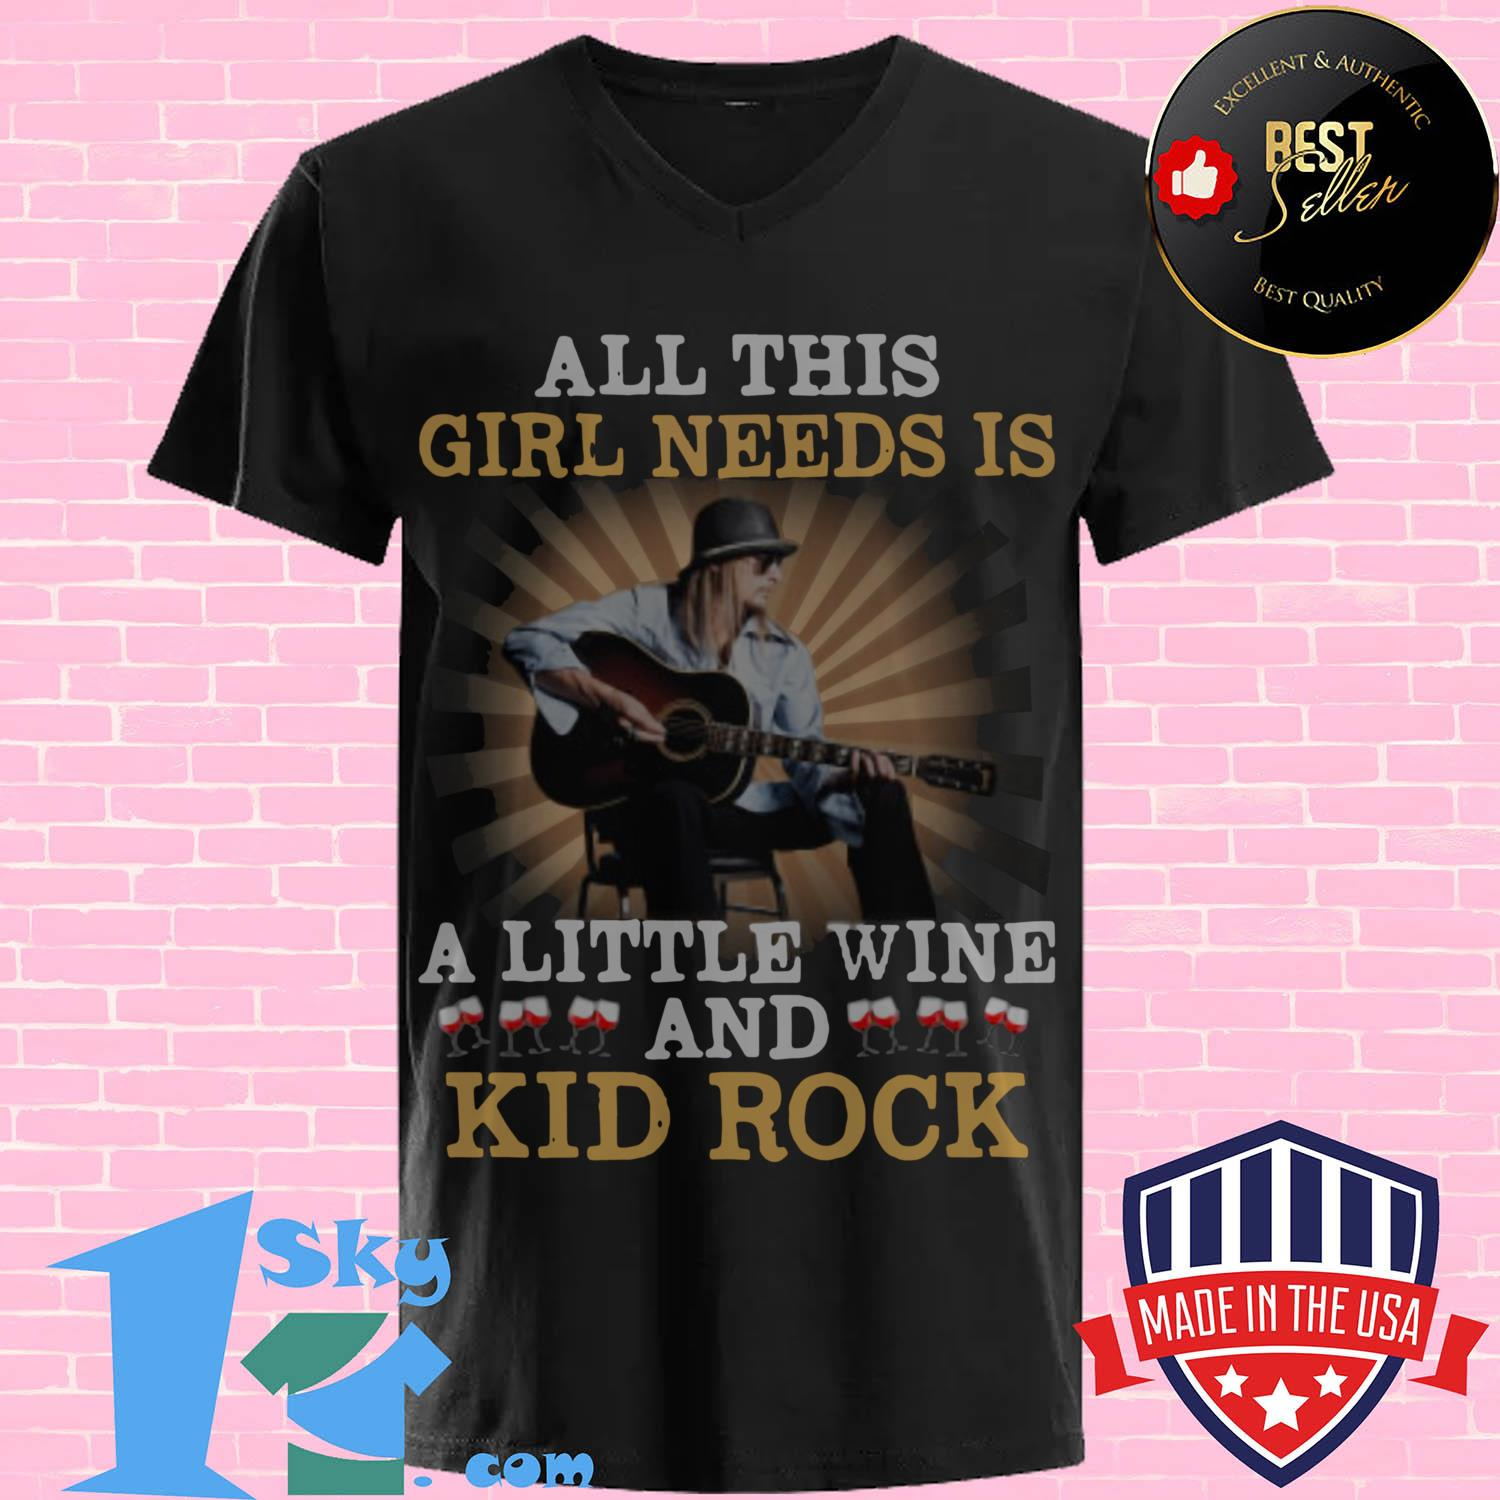 all this girl needs is a little wine and kid rock v neck - All this girl needs is a little Wine and Kid Rock shirt